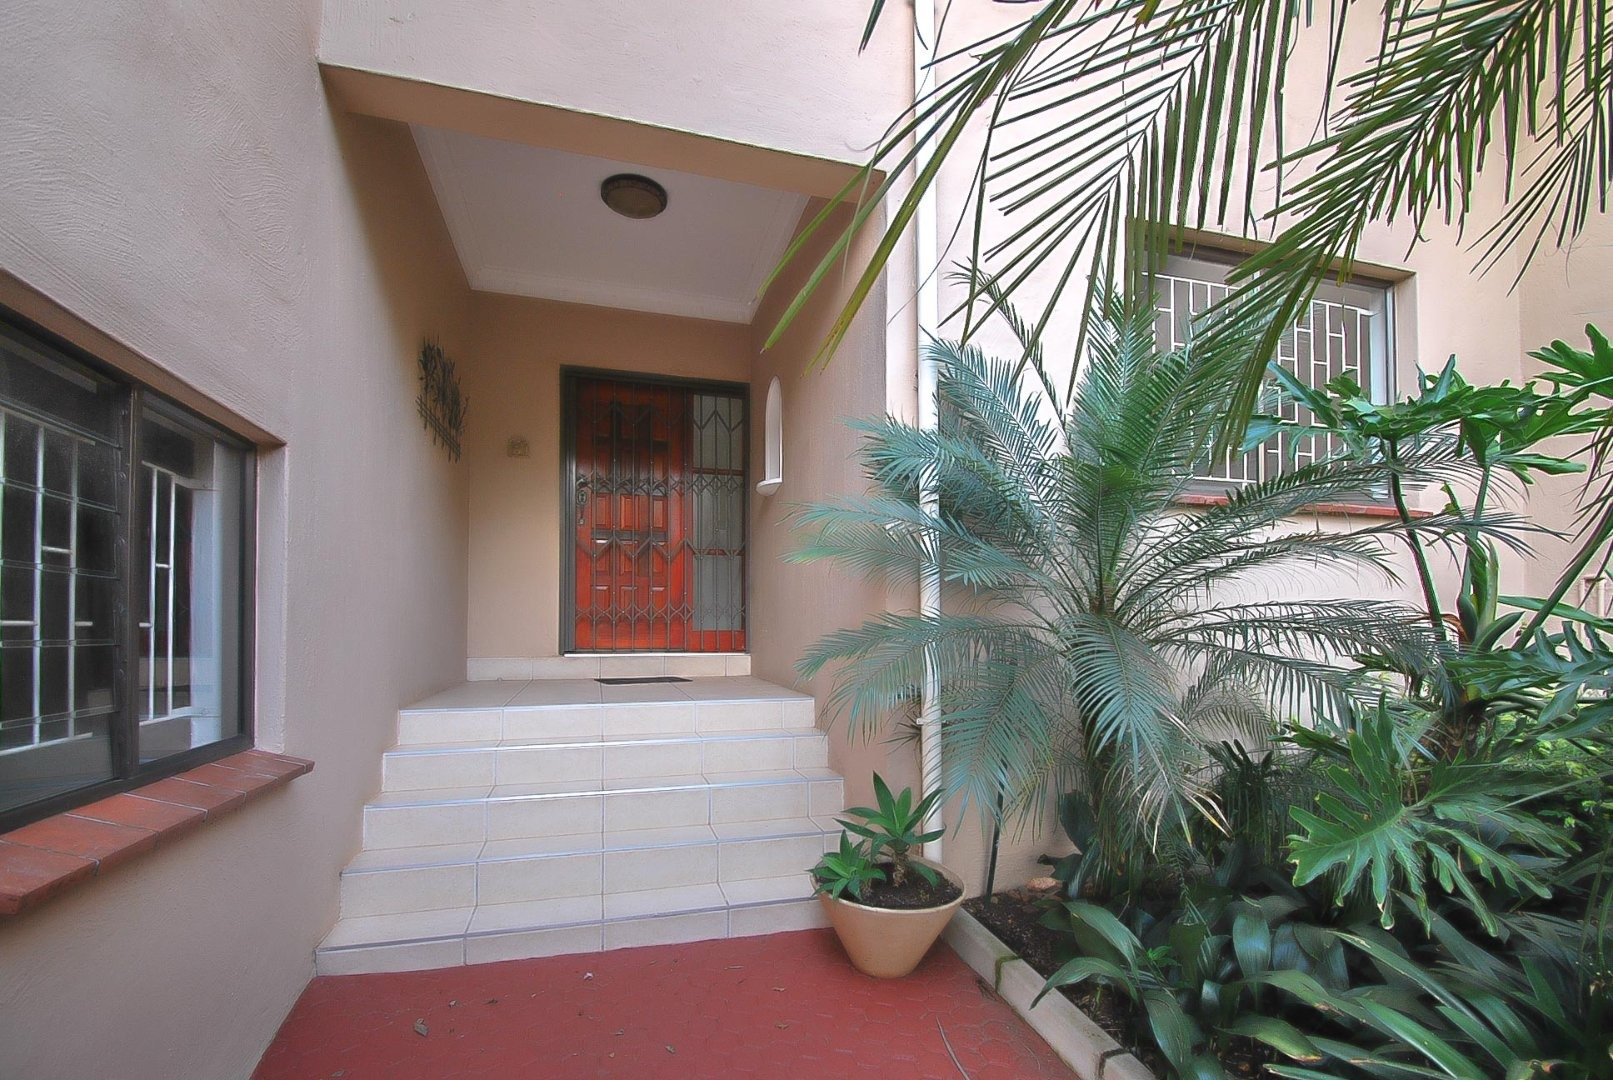 3 Bedroom House For Sale in Quellerina